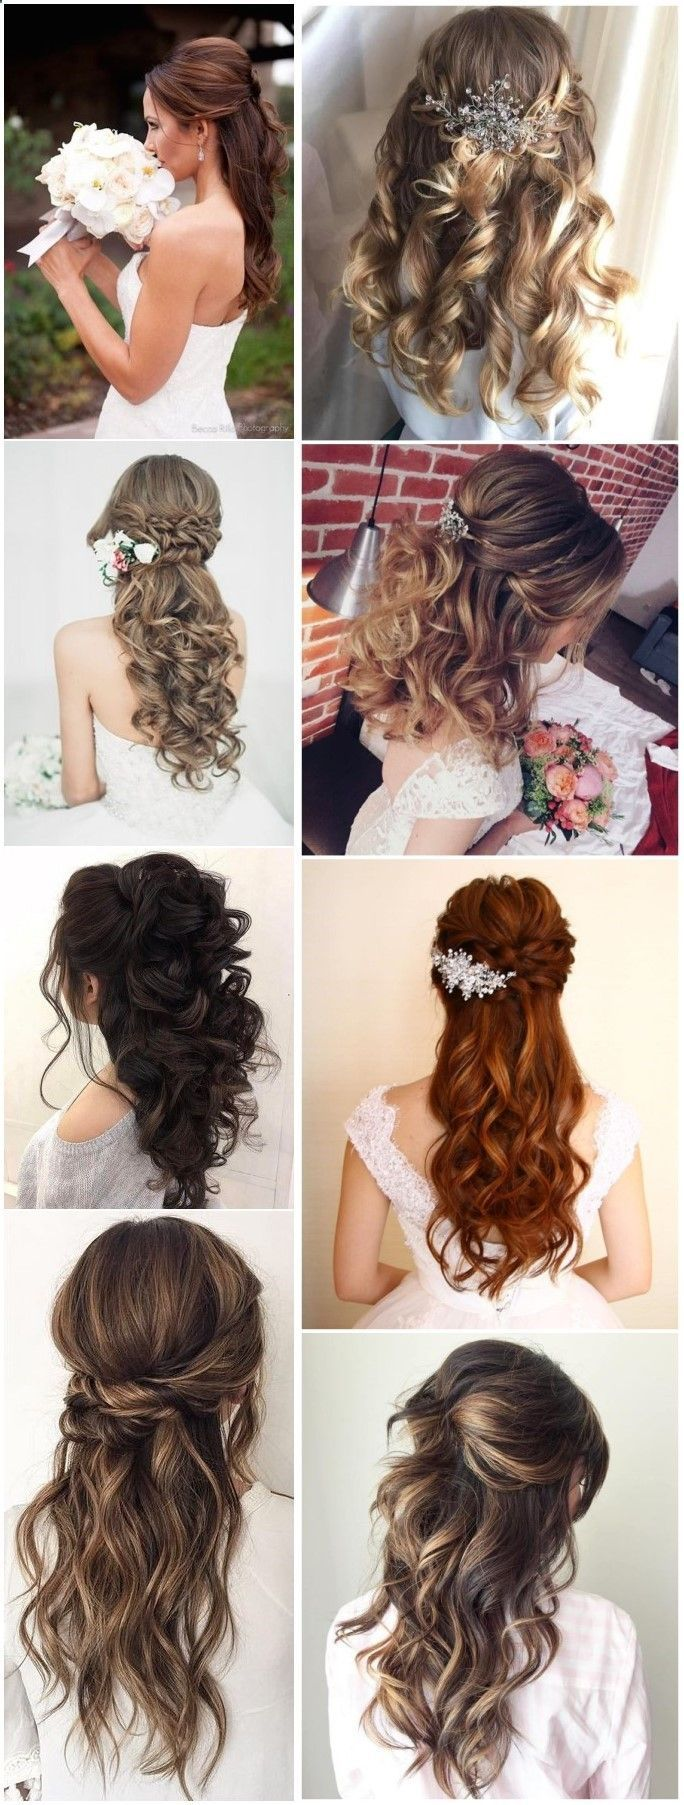 20 Half Up Half Down Wedding ceremony Hairstyles Anybody Would Love